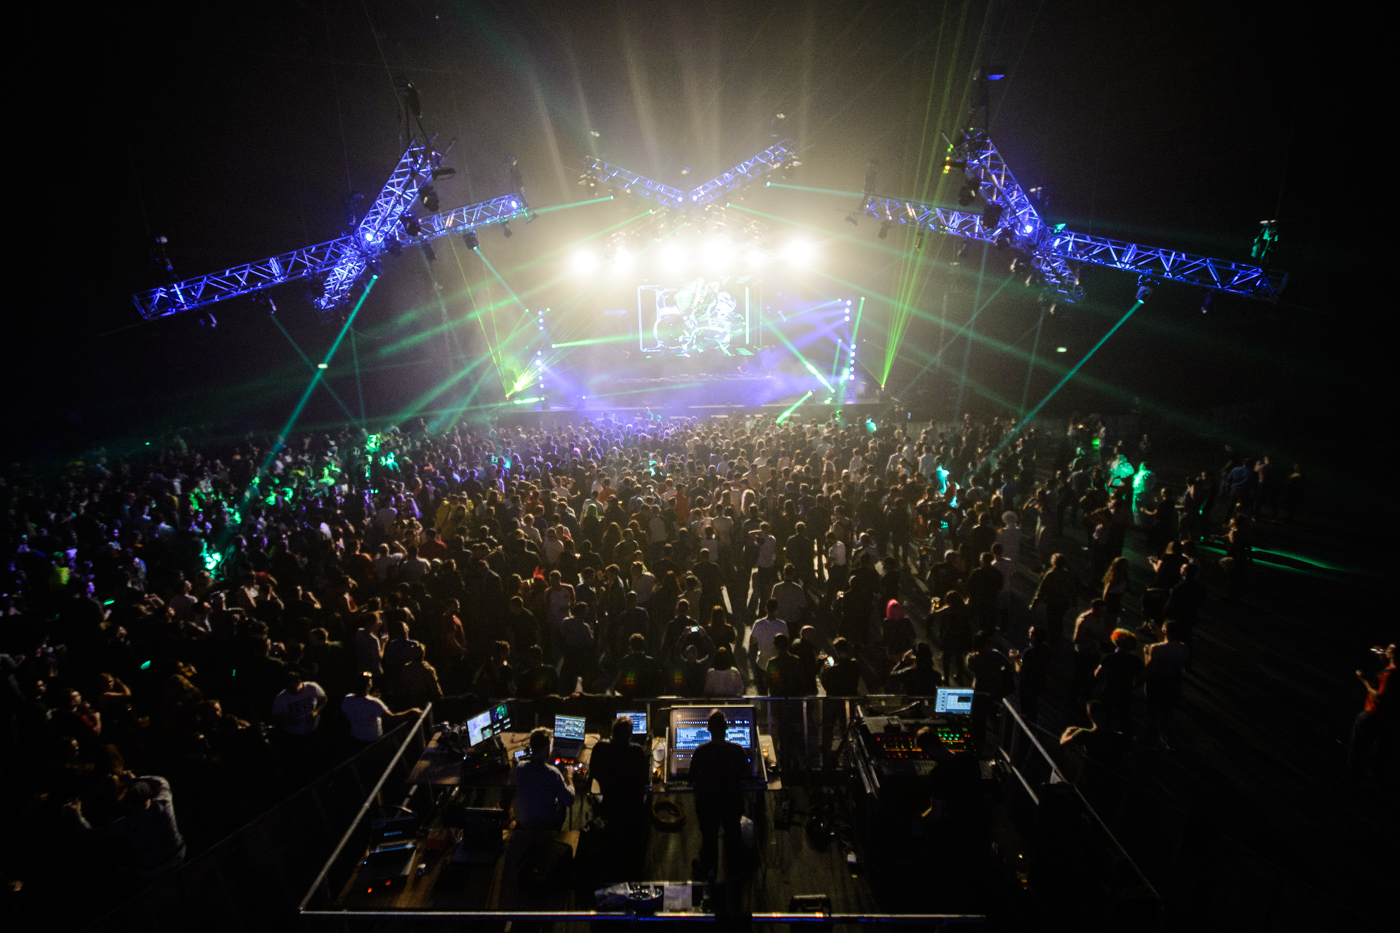 winterparty-at-3arena-dublin-30-10-2016-by-sean-smyth-17-of-53